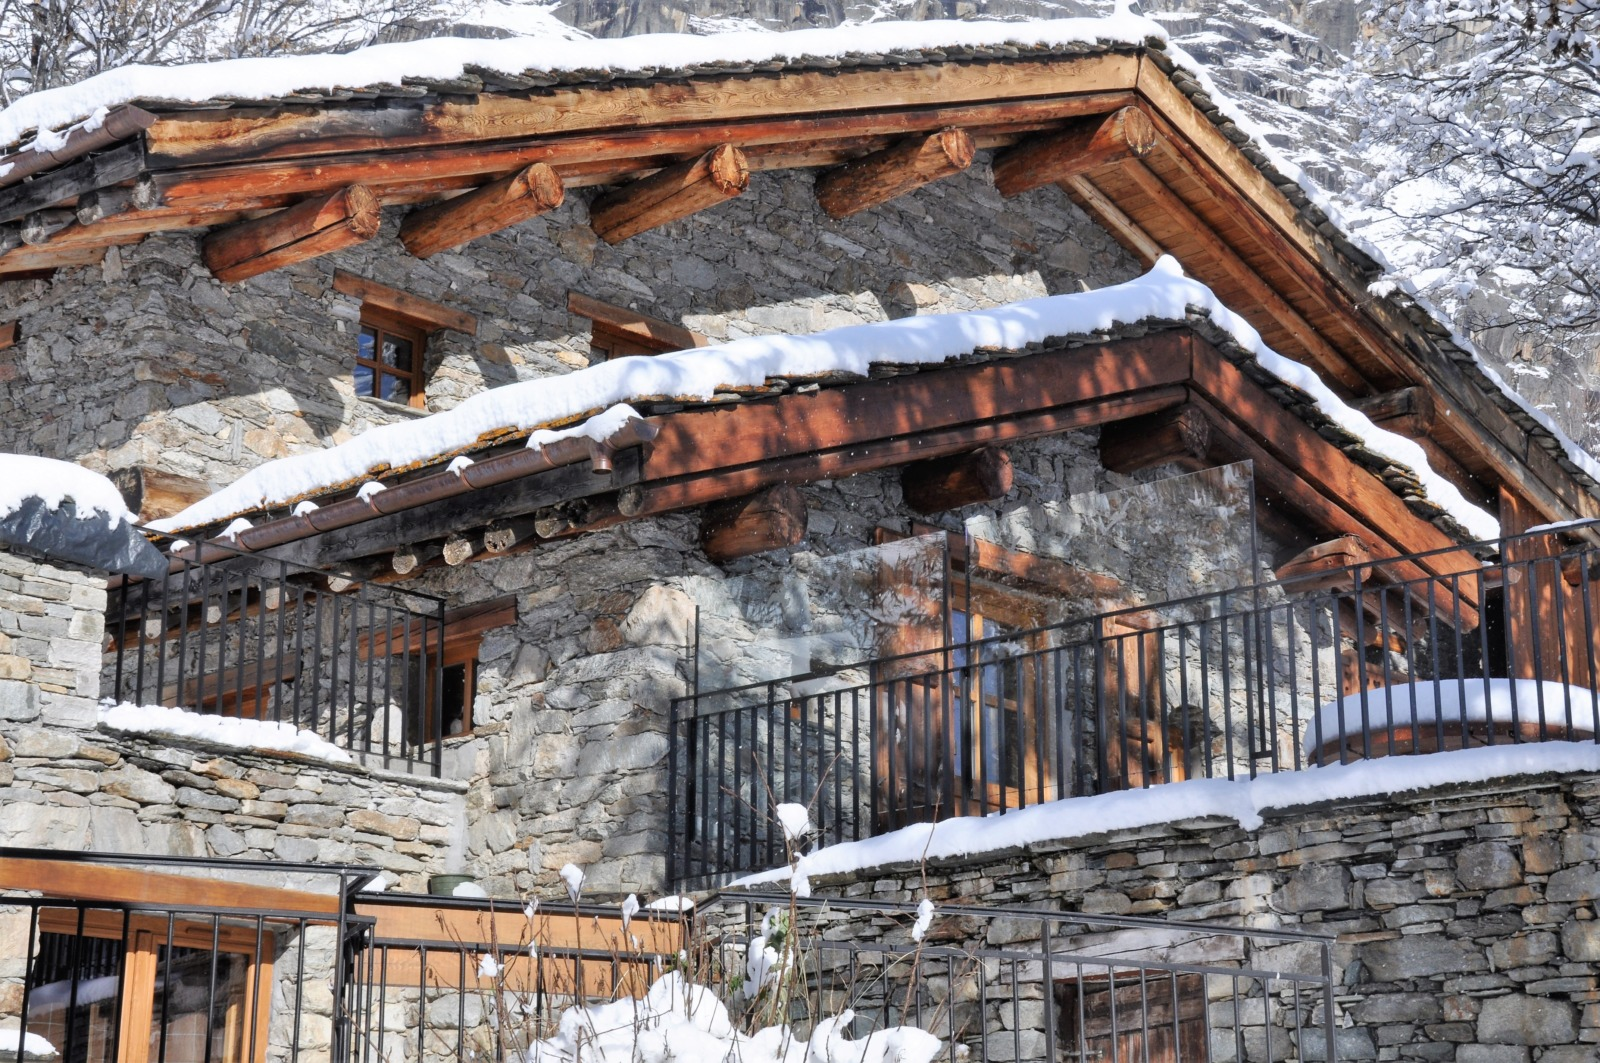 A typical Savoyard chalet under the snow